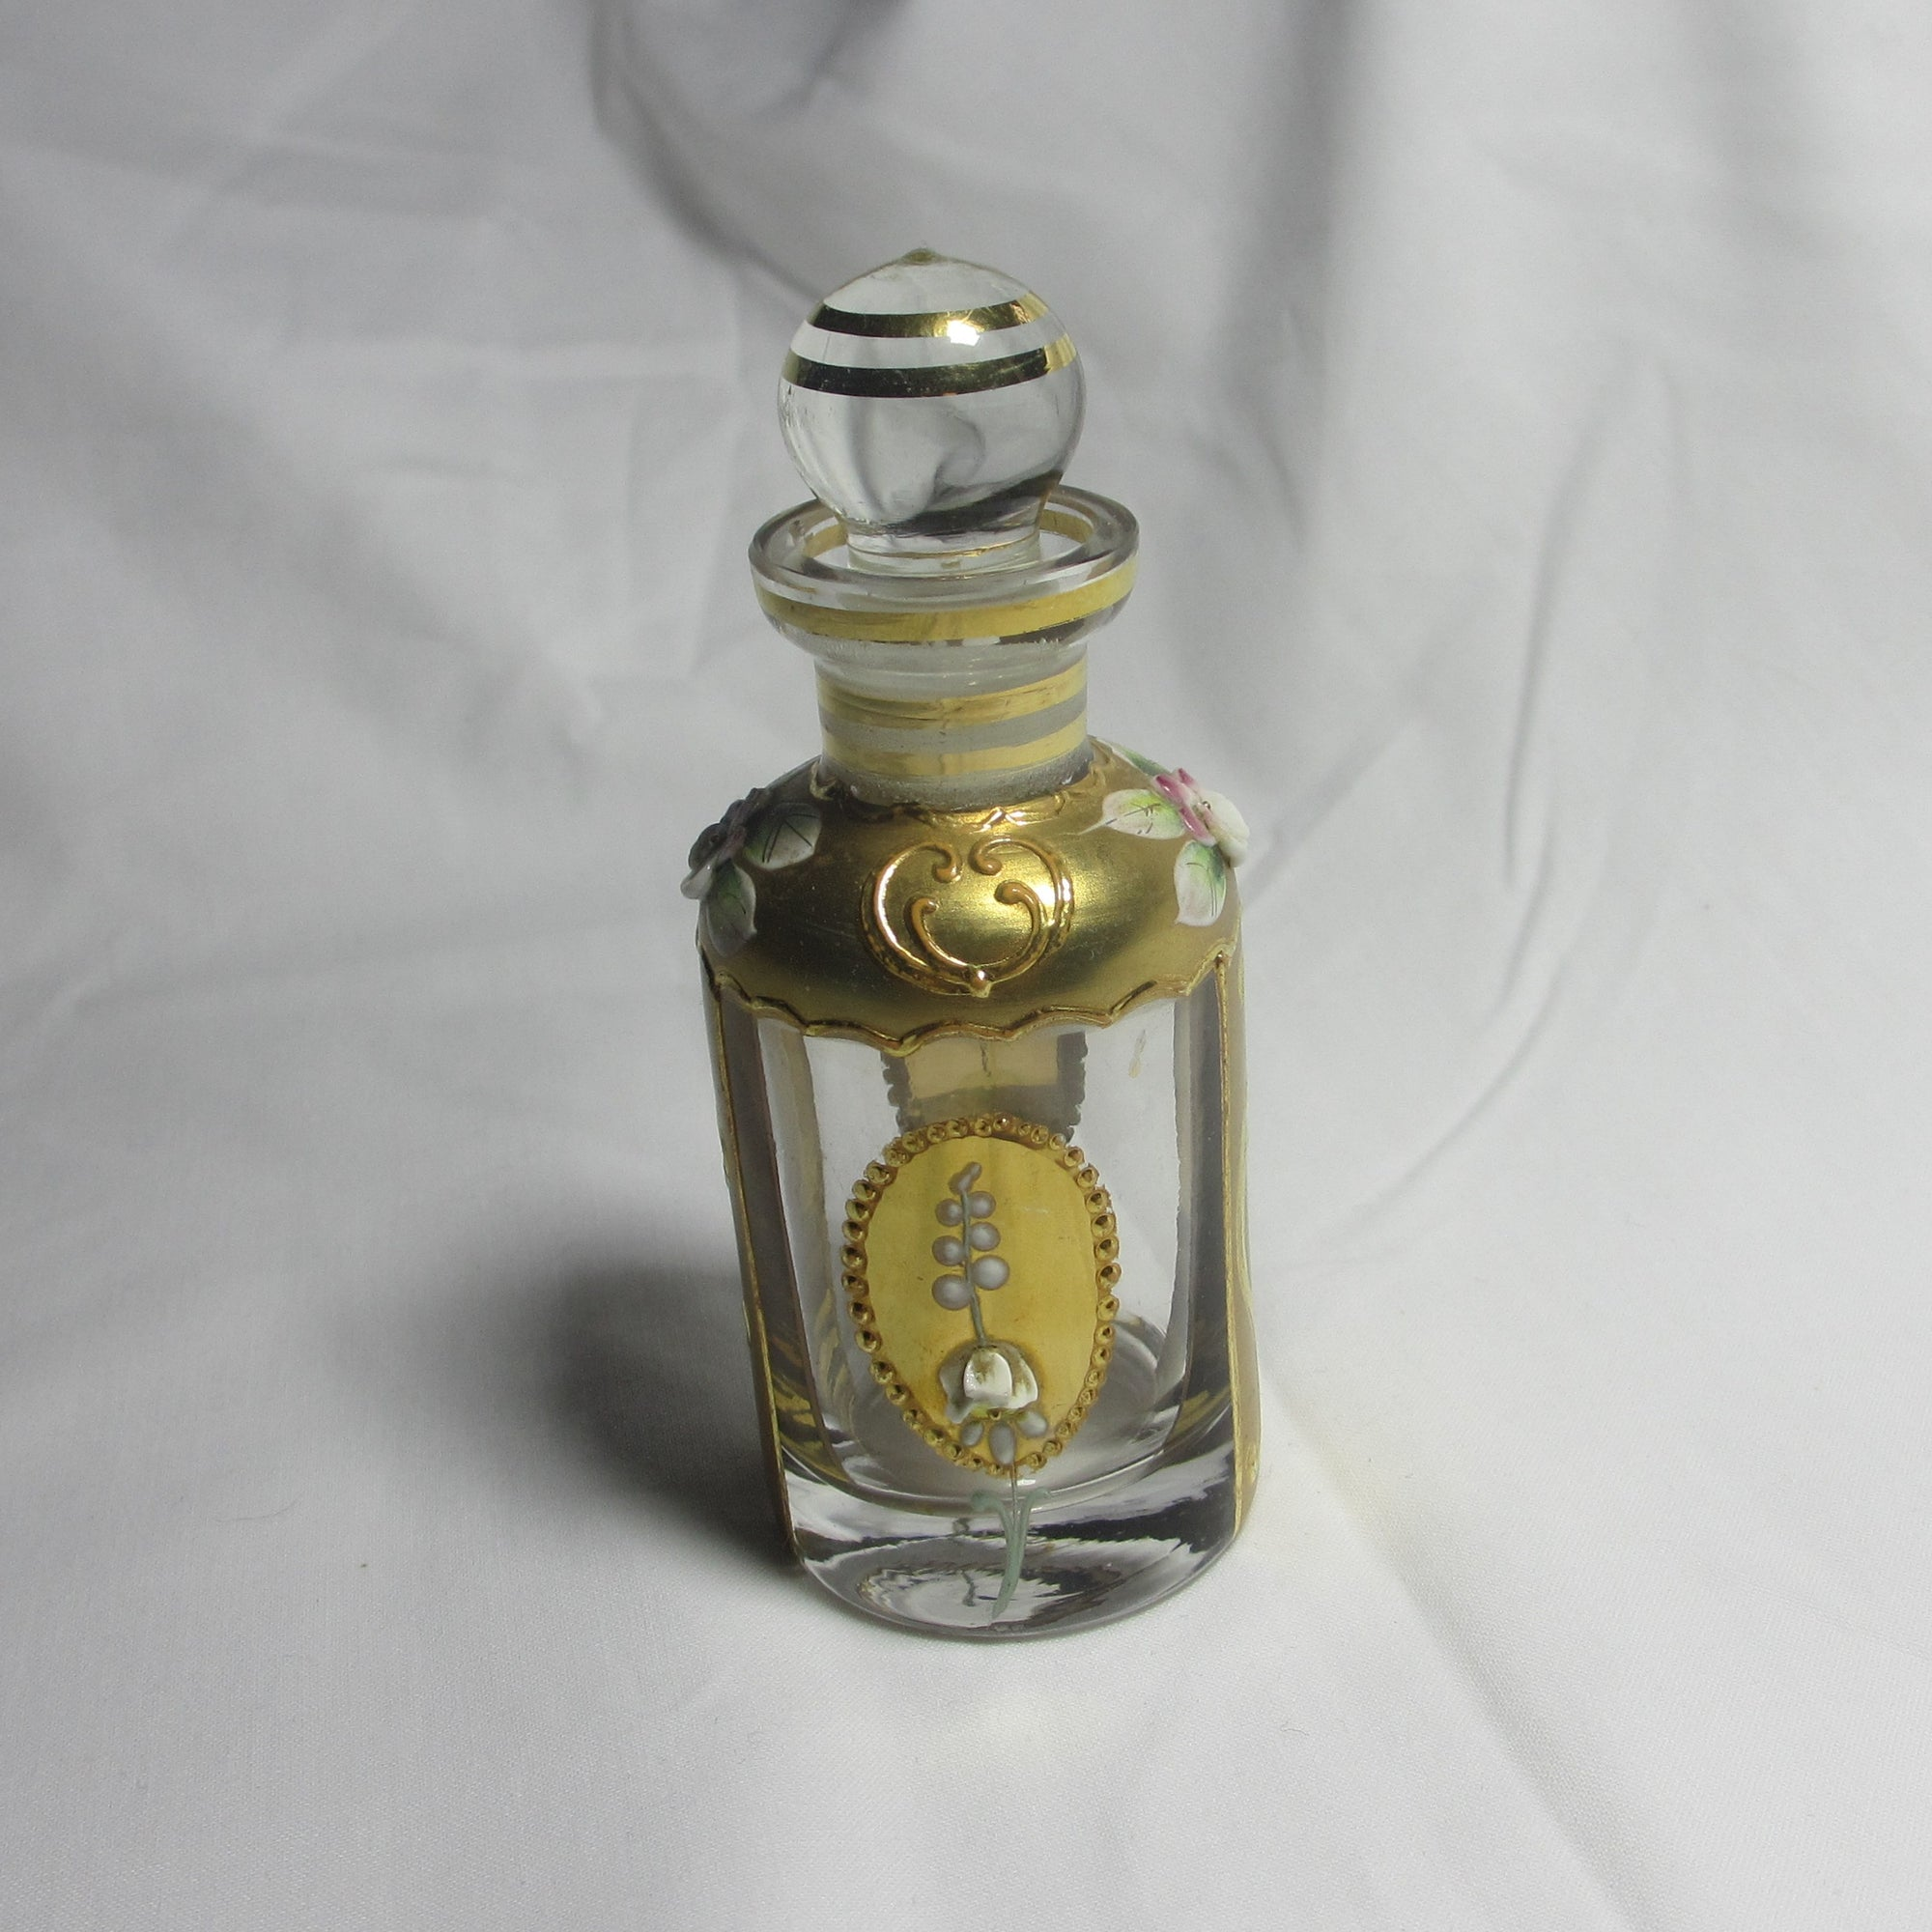 Floral Venetian Glass Scent Bottle Antique Edwardian c1910